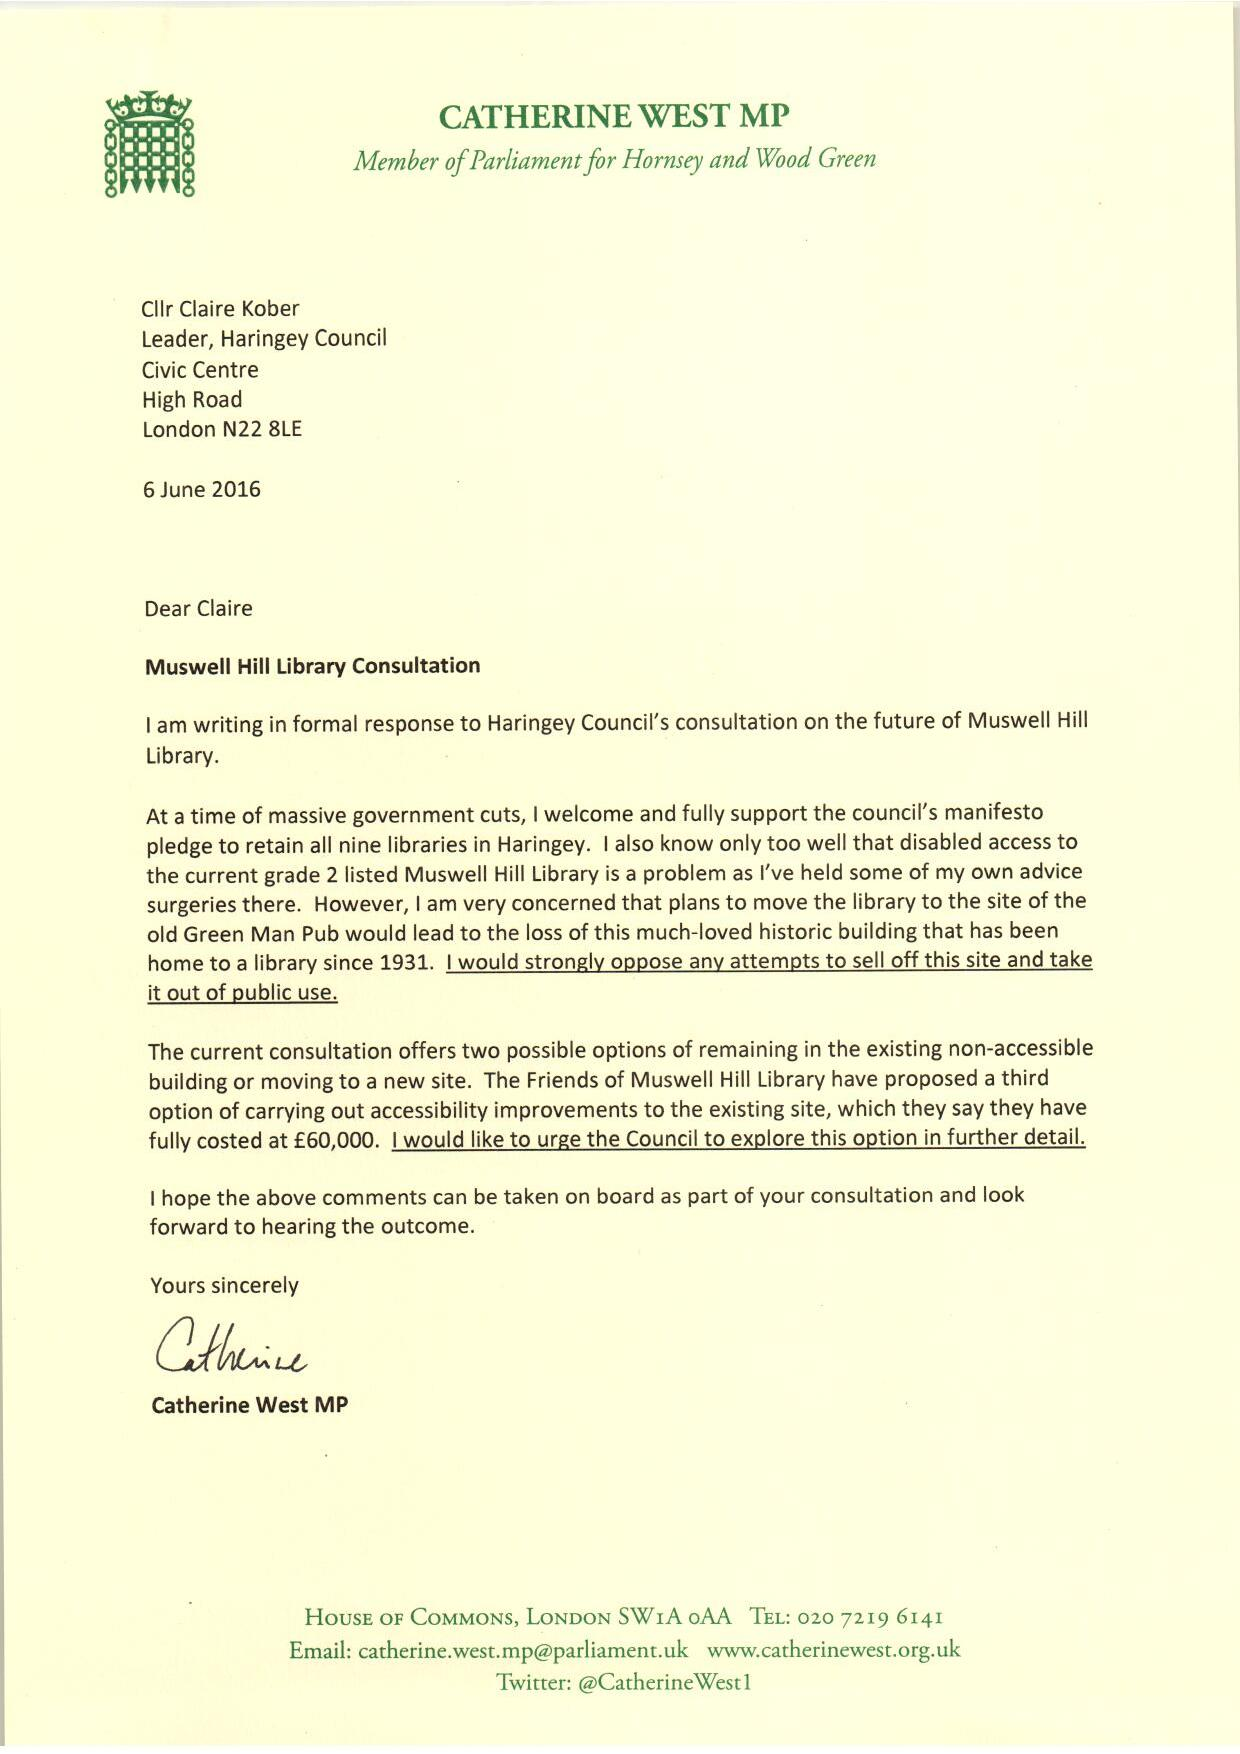 Muswell_Hill_Library_Consultation_-_Catherine_West_MP-page-001.jpg